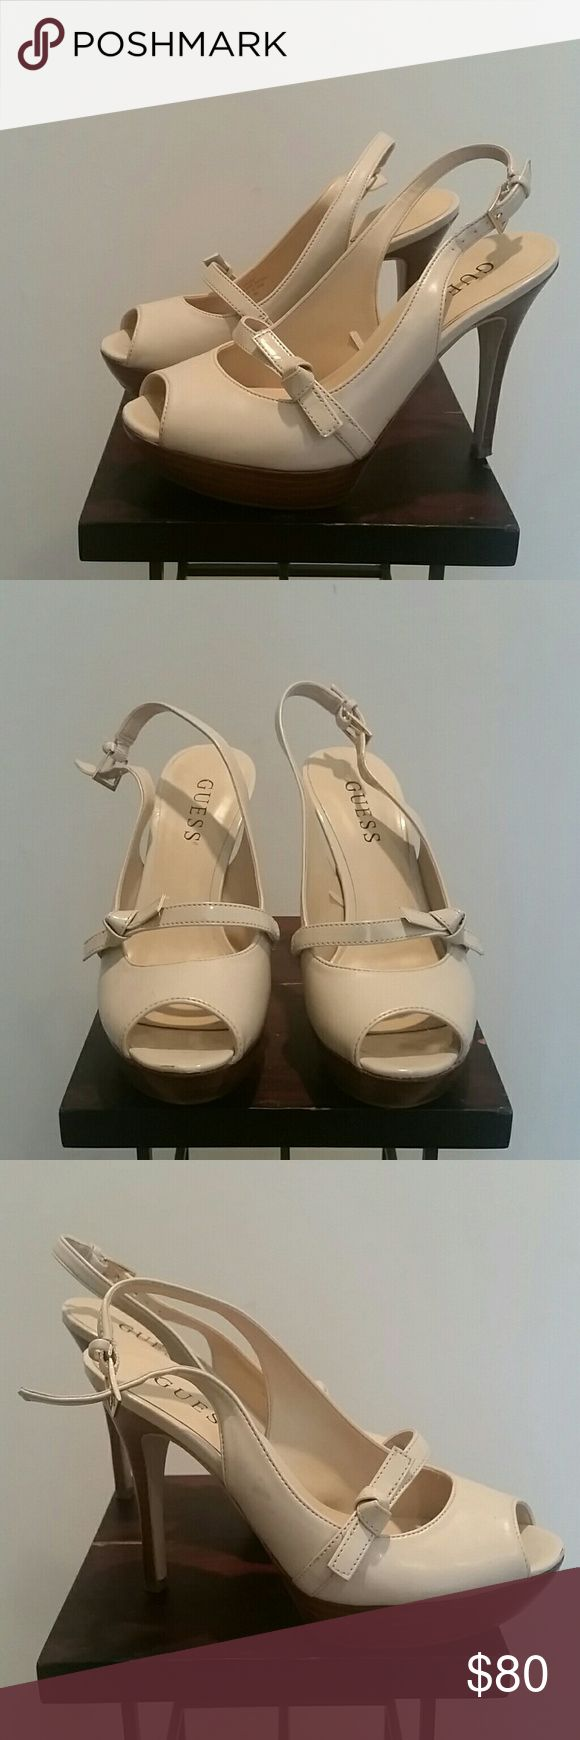 Nude heels Guess nude, open back strap heels, peep toe, thick front bottom. Worn a couple times, practically brand new. Size 5. GUESS Shoes Heels